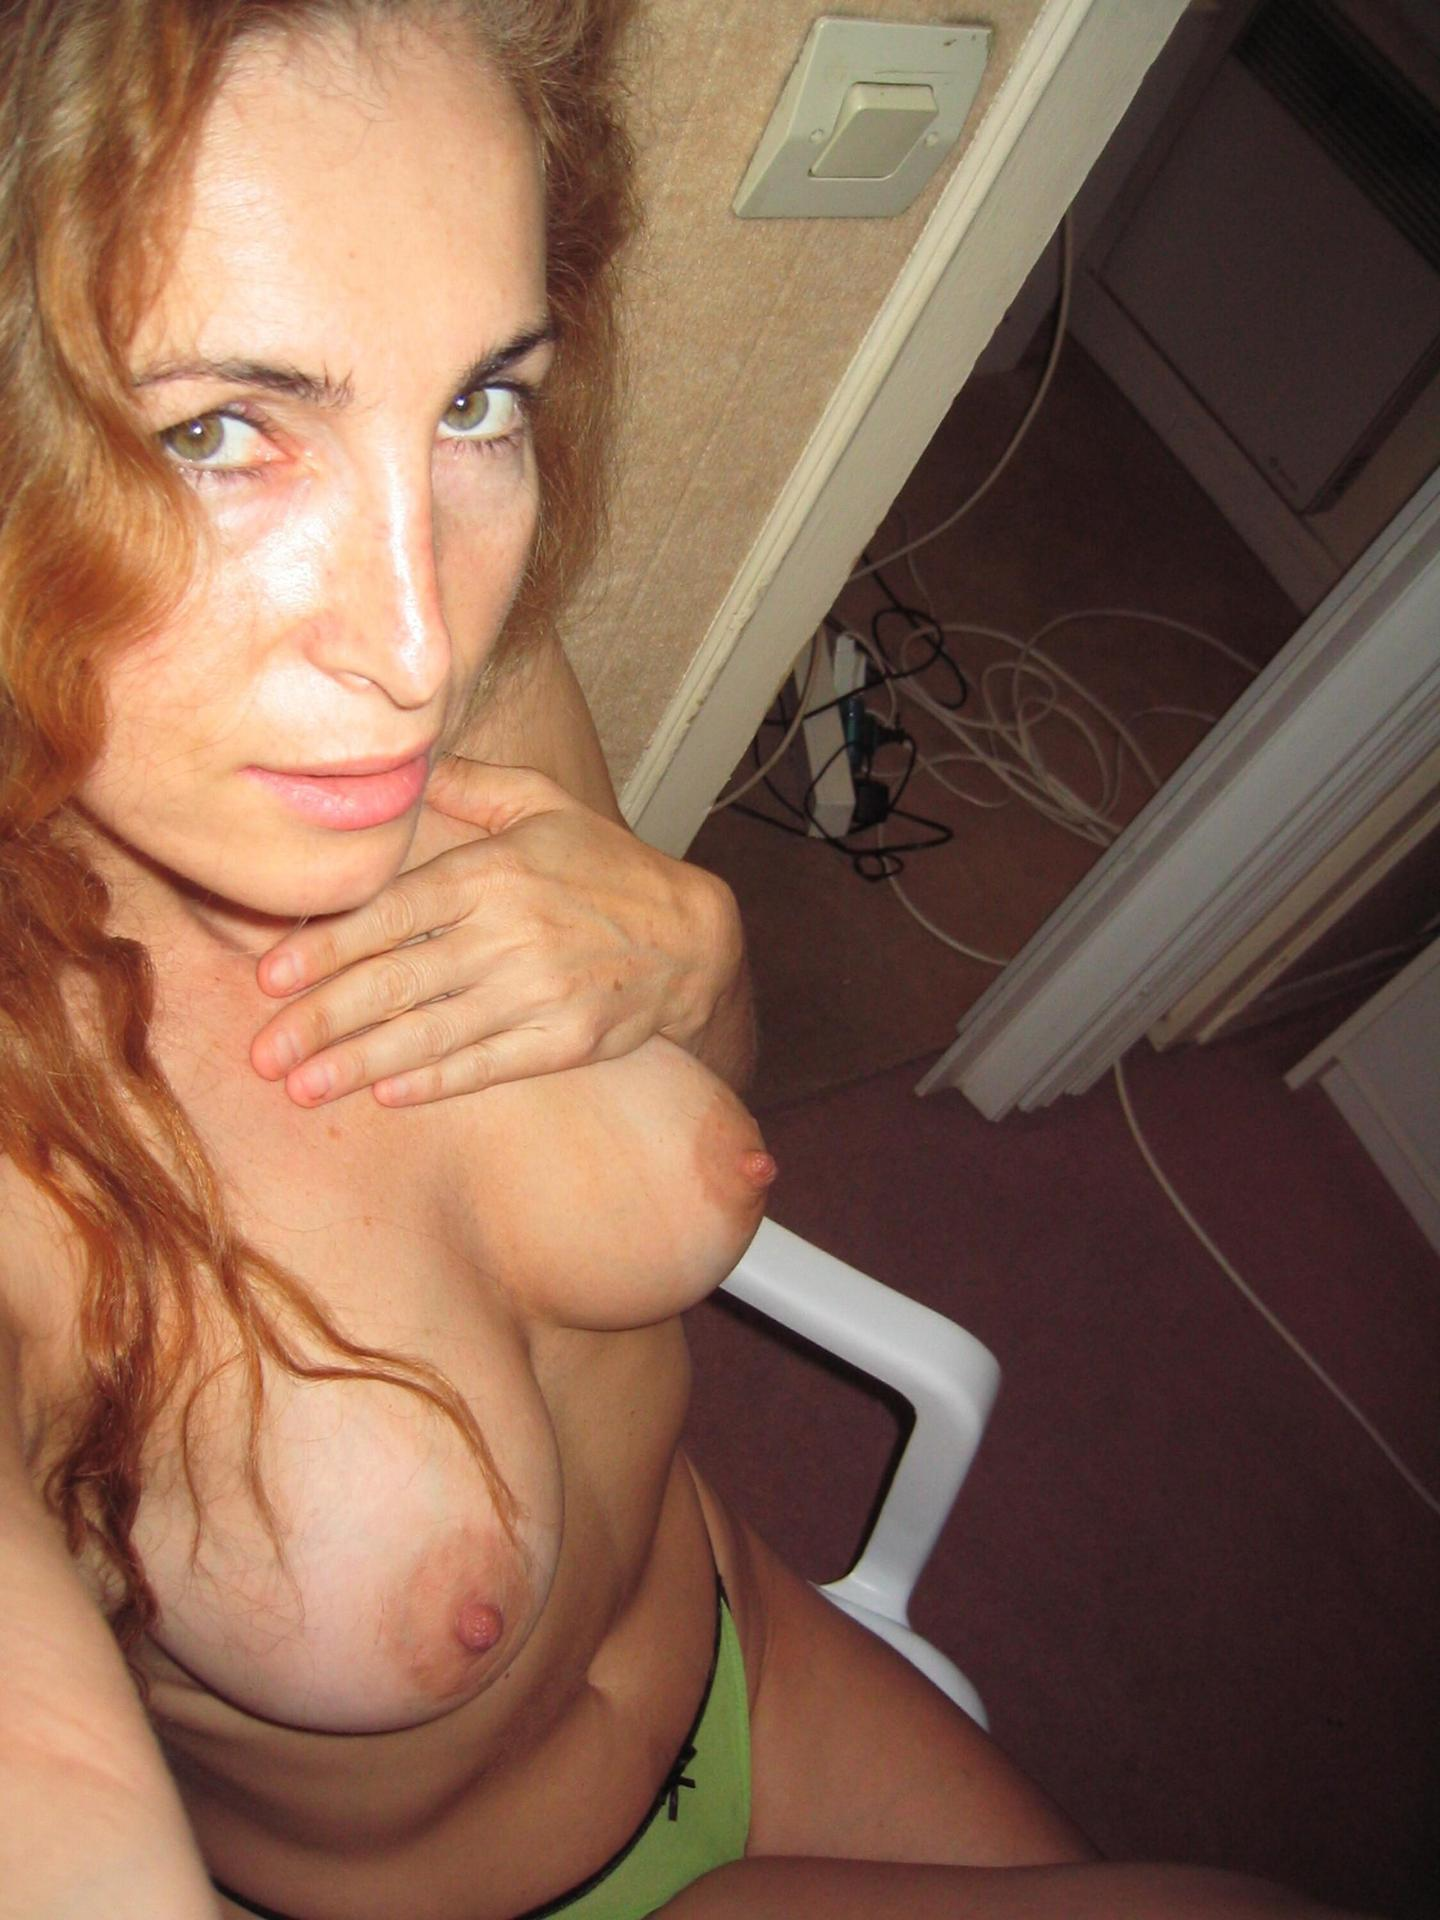 Hot milf topless shows off beautiful breasts. Sexy mom with big tits snaps erotic nudes while sitting on a chair